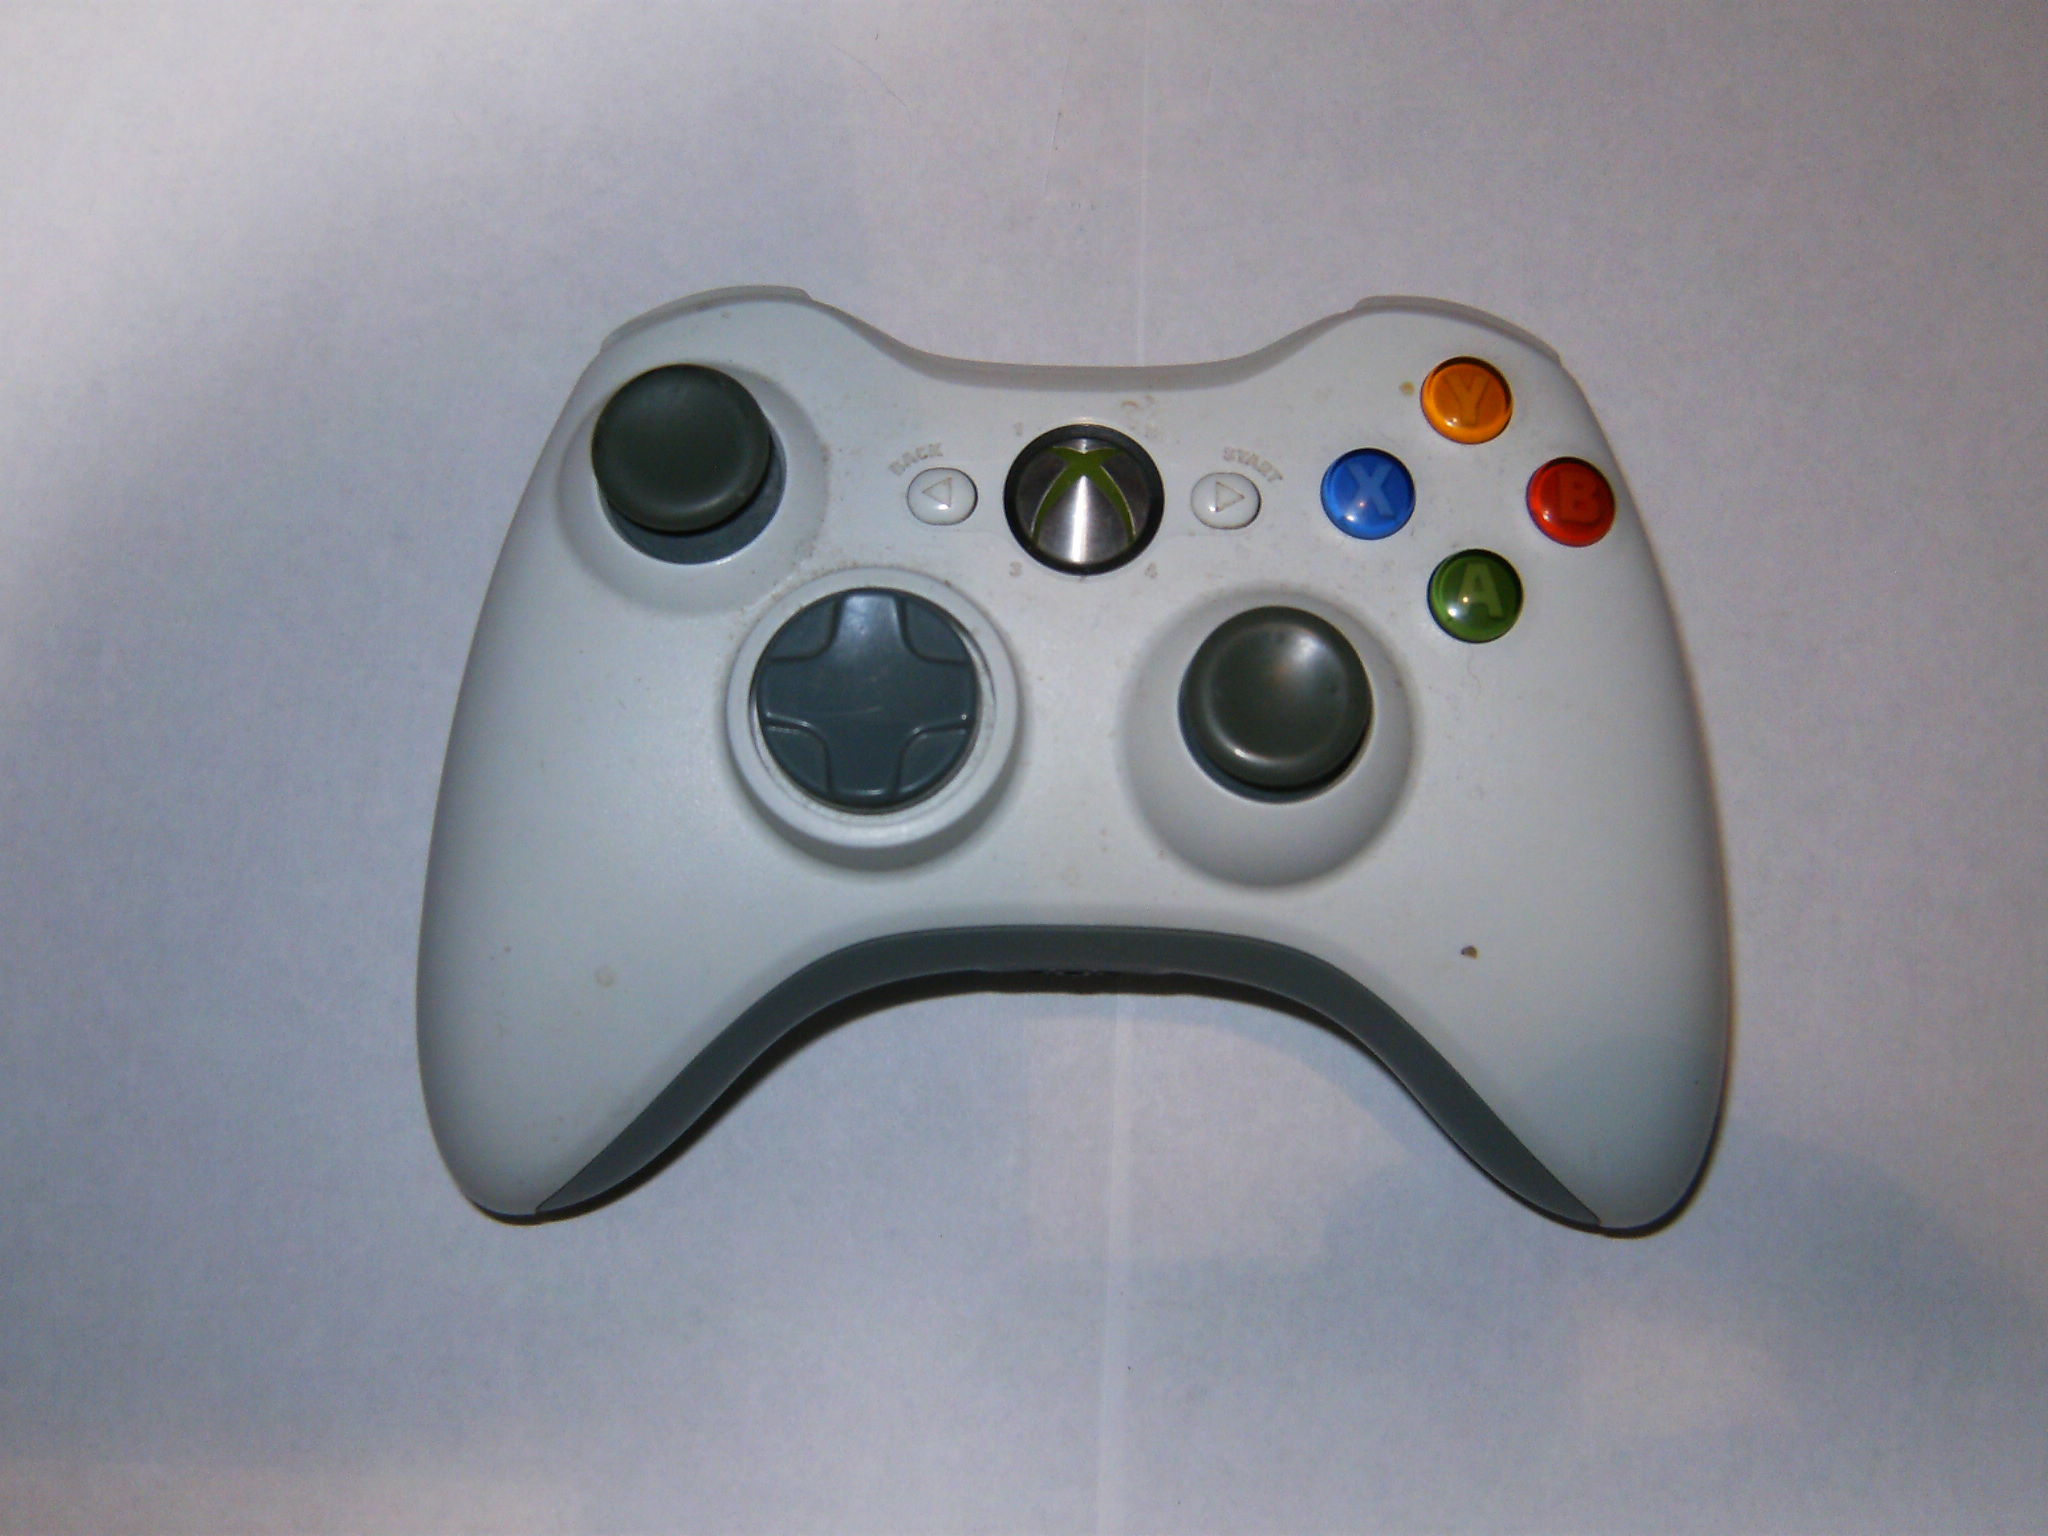 Xbox 360 Wireless Controller Left Analog Stick Replacement - iFixit ...